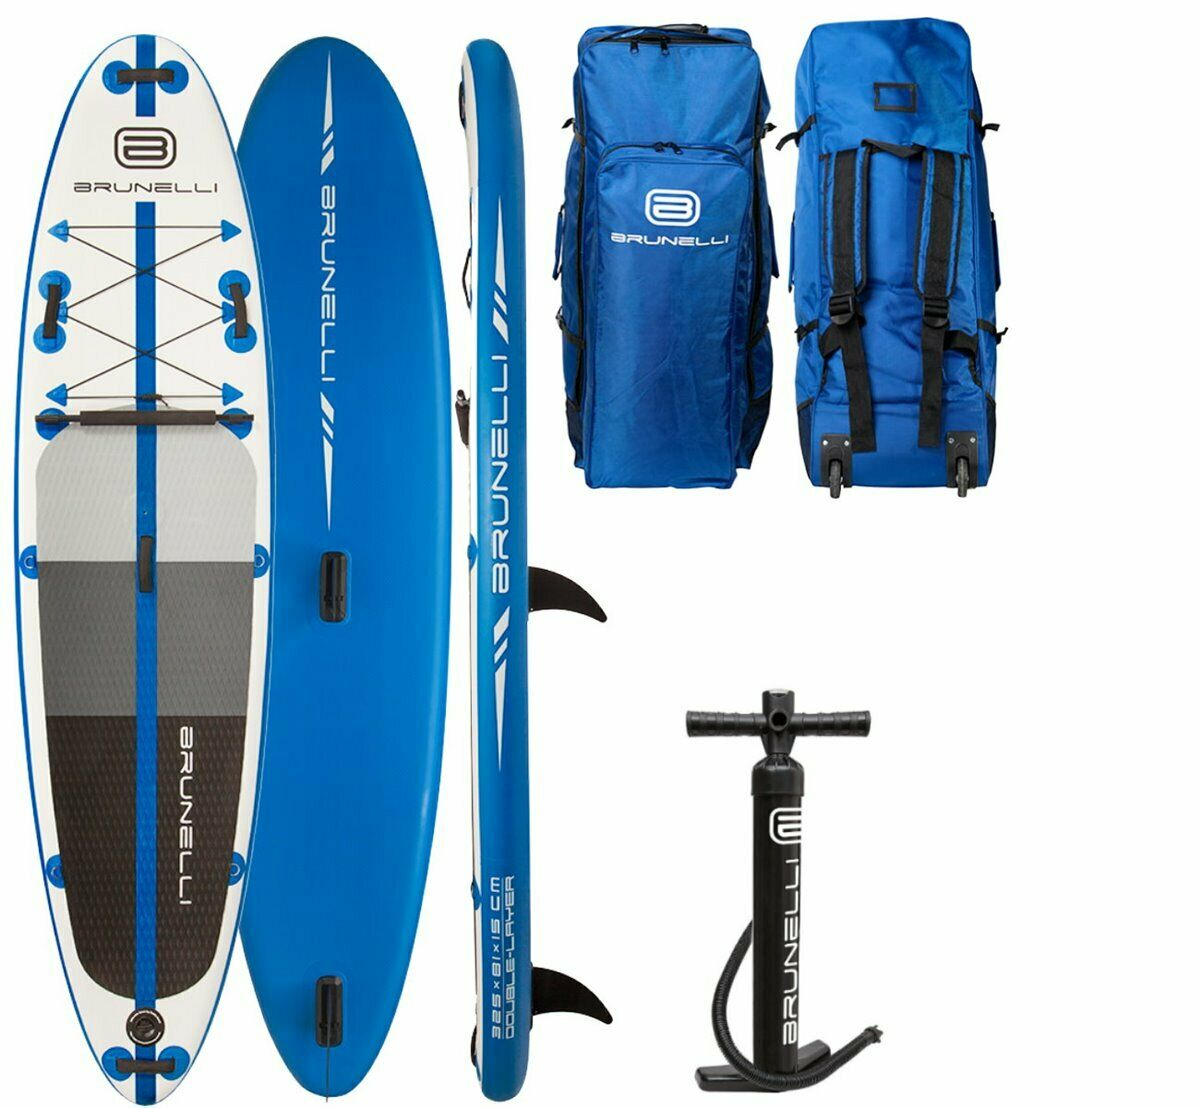 Brunelli 10.8 Windsurf Premium All-Round Sup Stand up Board bluee 325cm